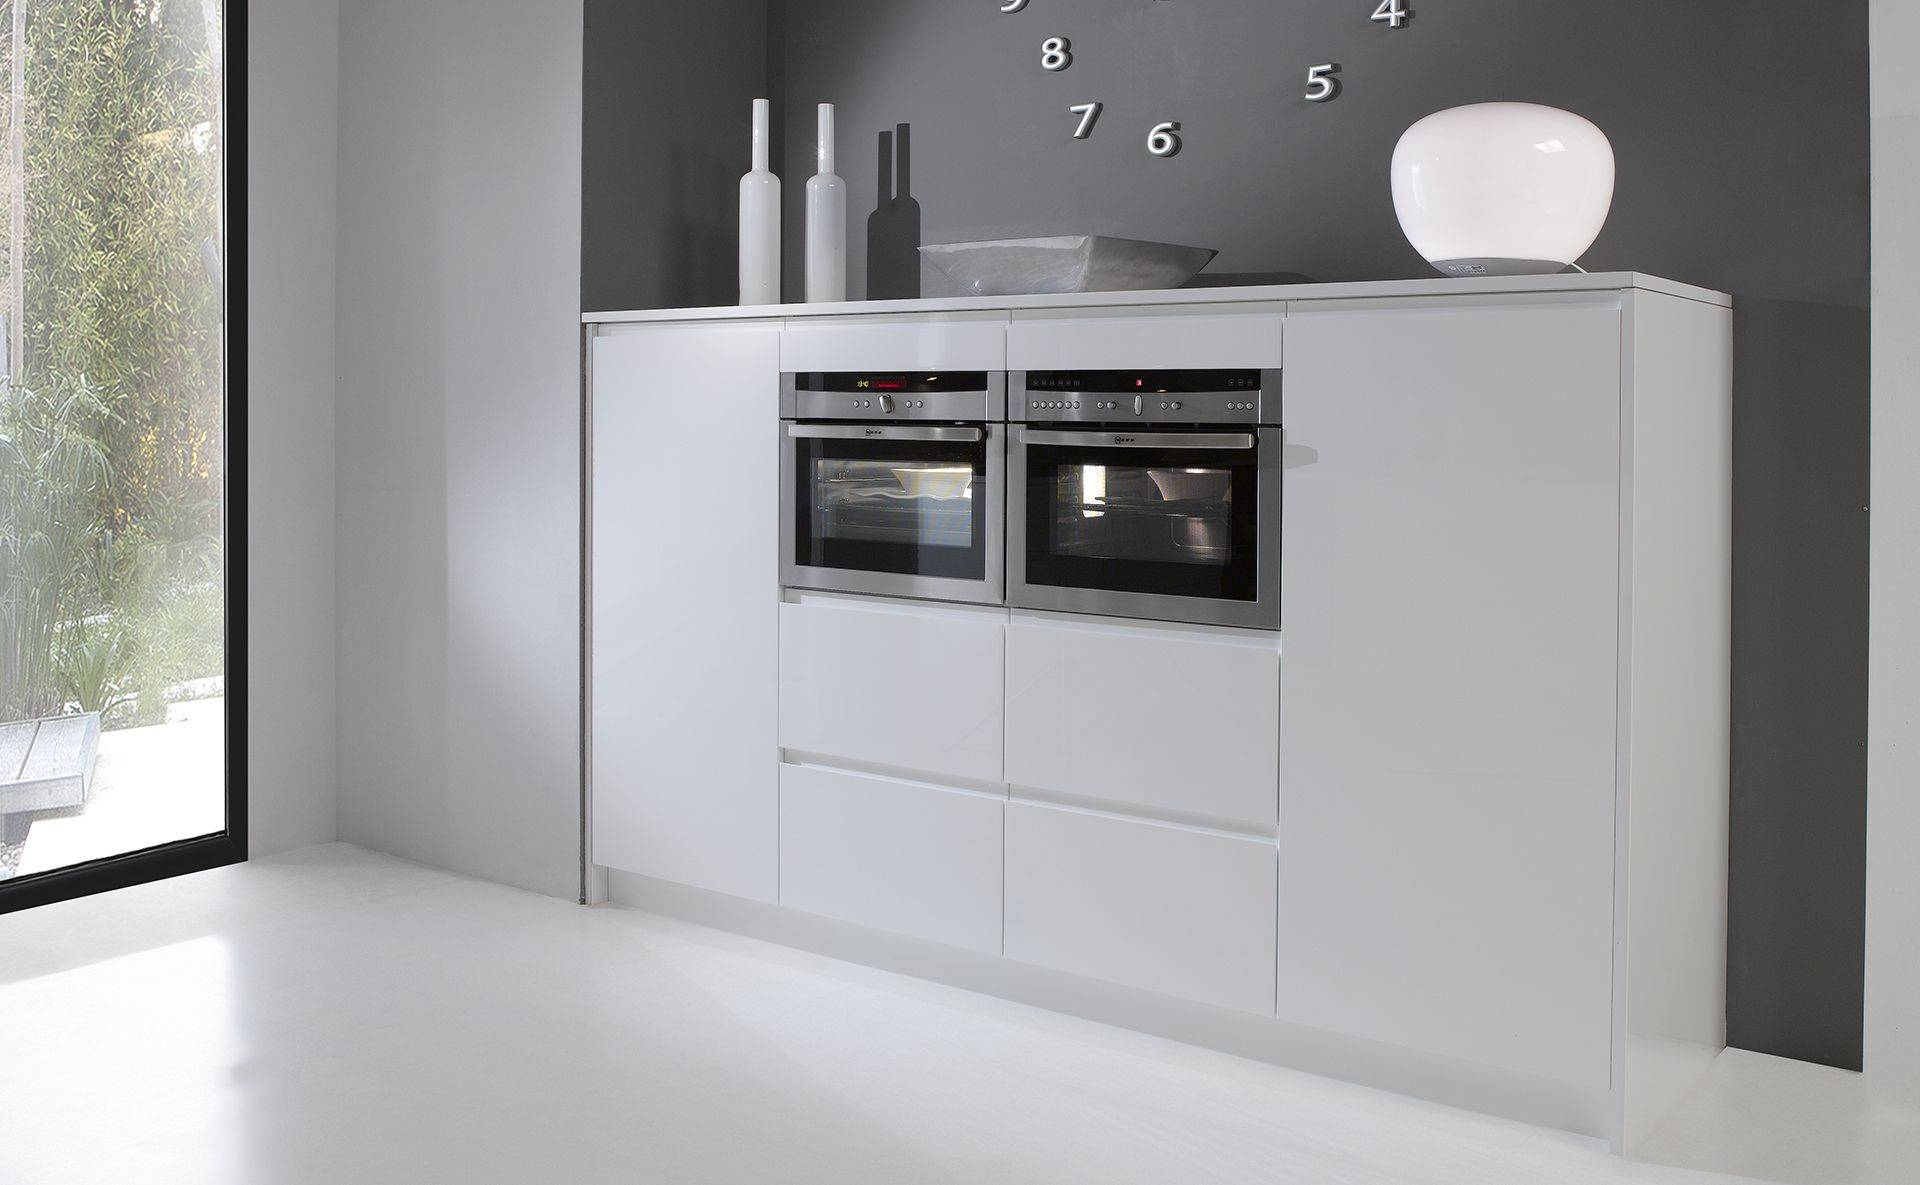 Bloc fours - Cuisine Courchevel Blanc Gloss